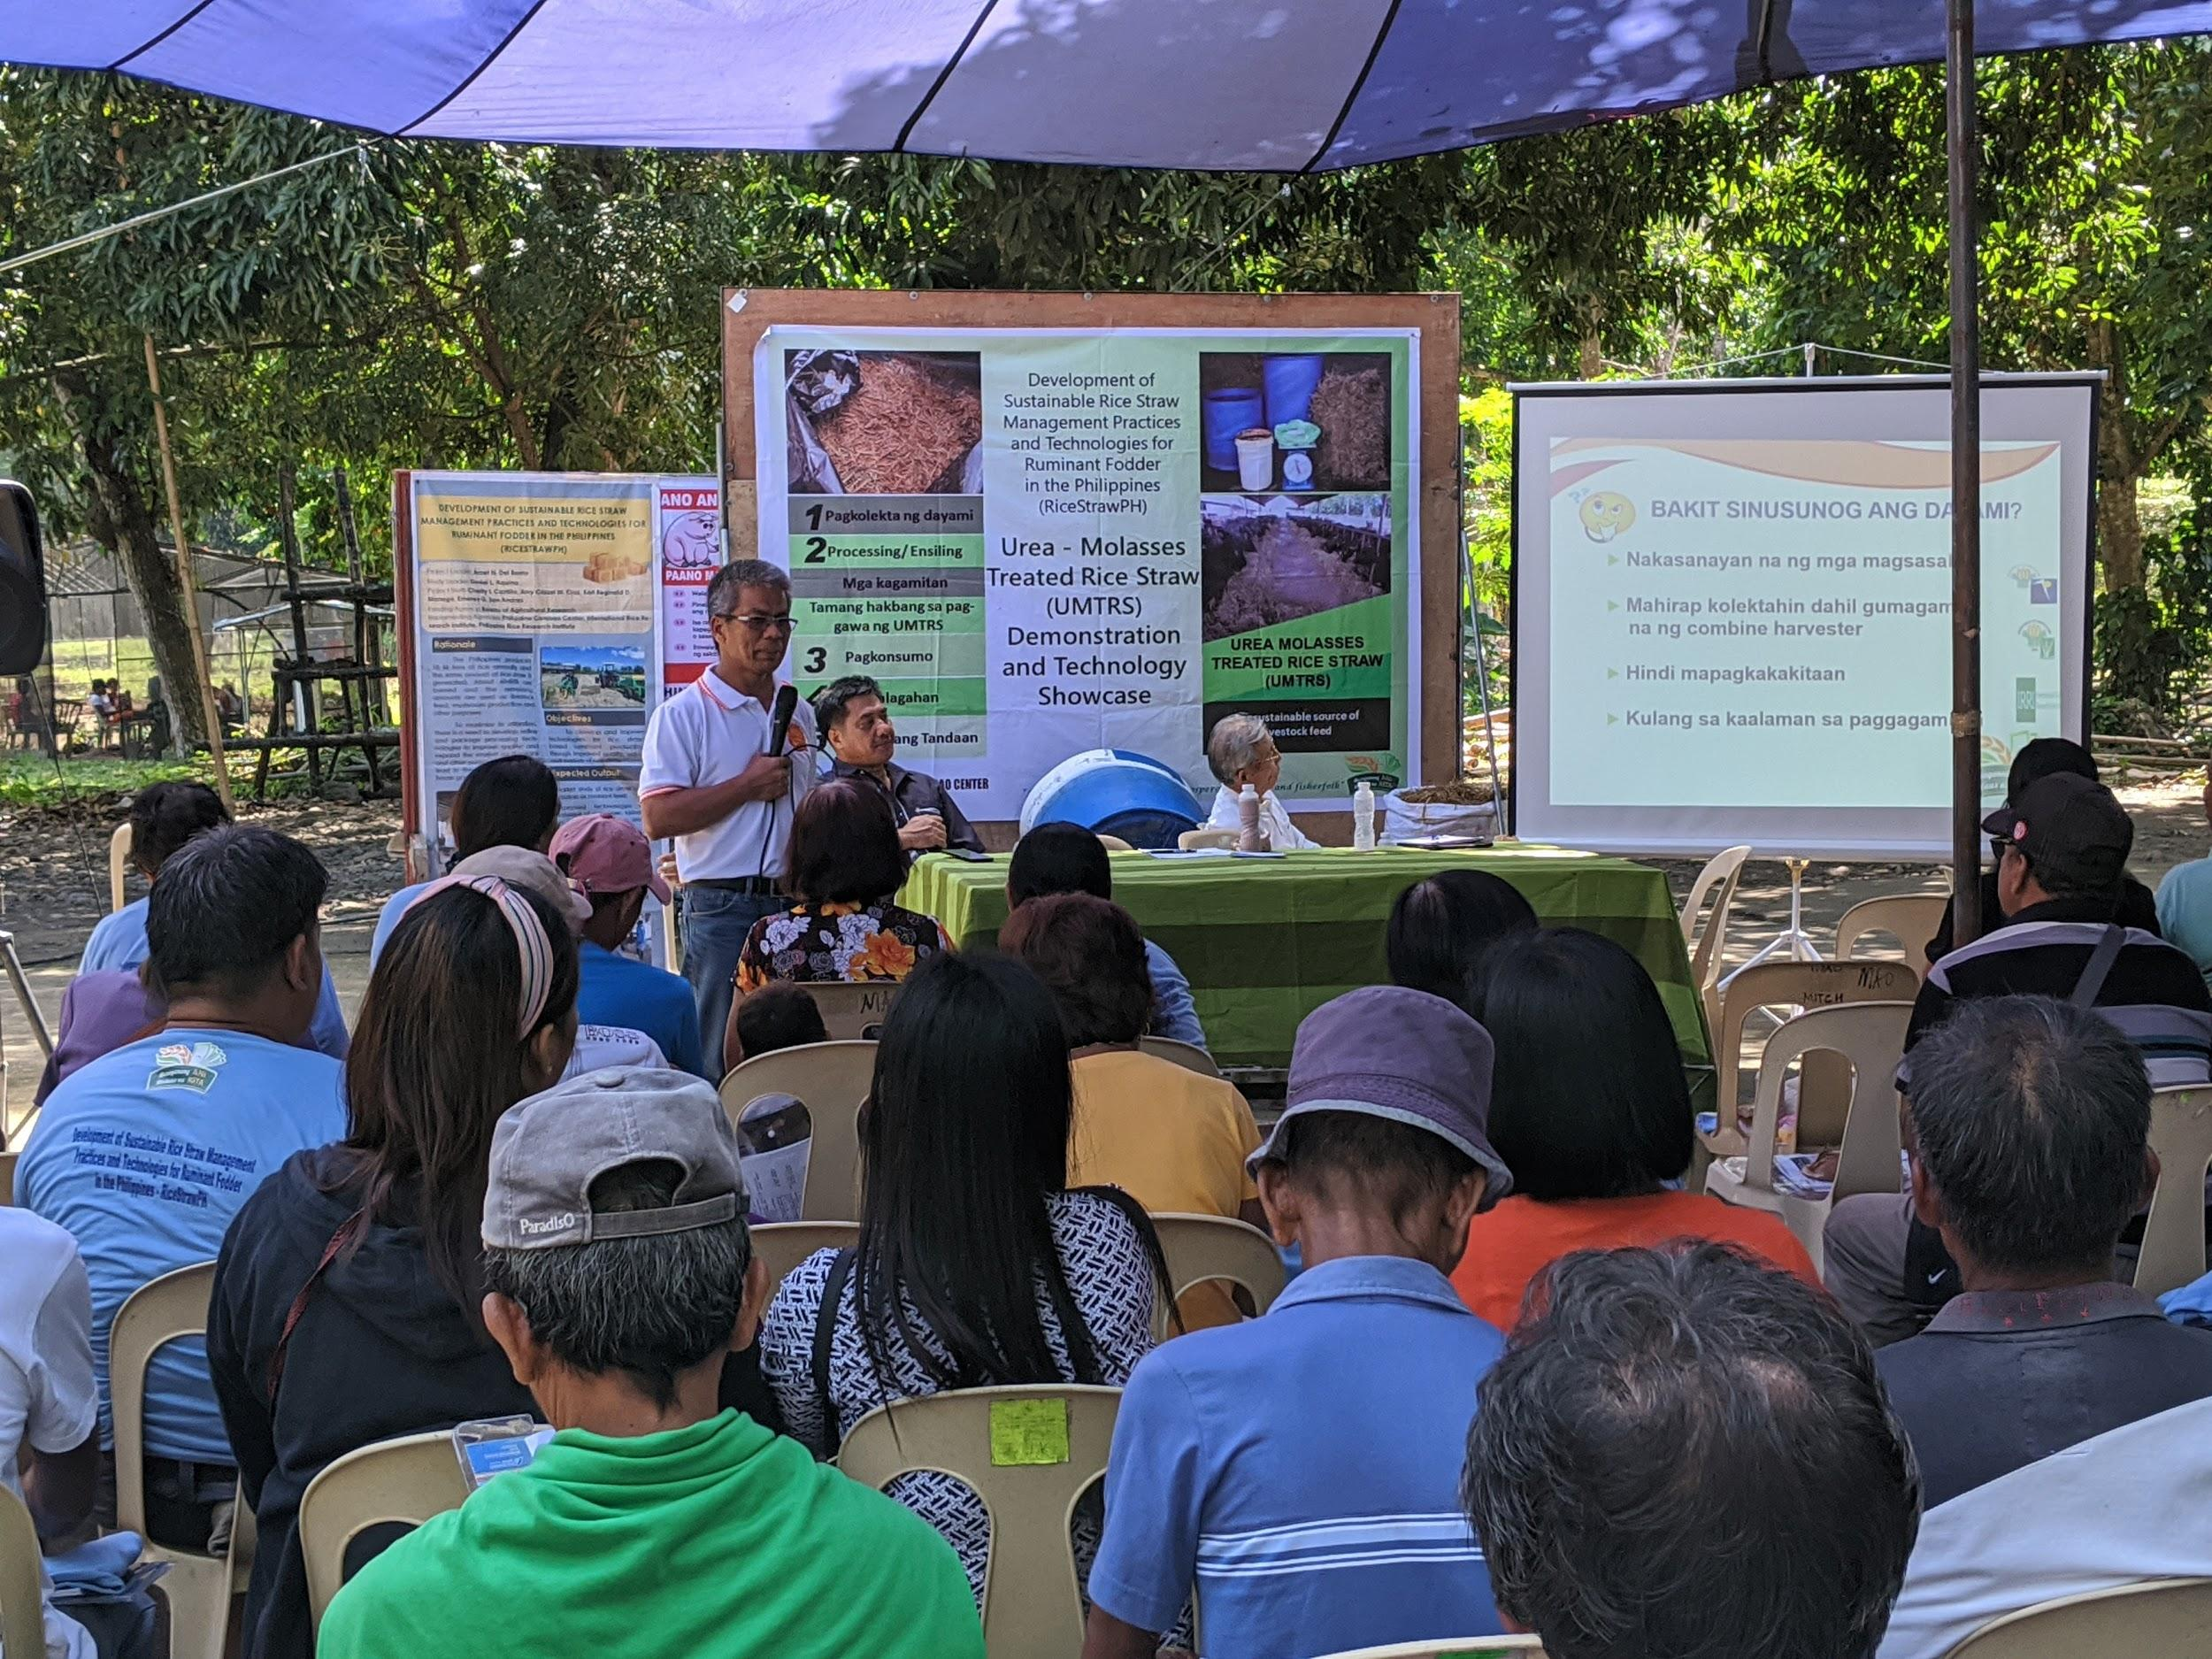 Dr. del Barrio presents an overview of the RiceStrawPH project. The project aims to develop optimal, localized, and sustainable rice straw management solutions in the Philippines. (Photo: IRRI)